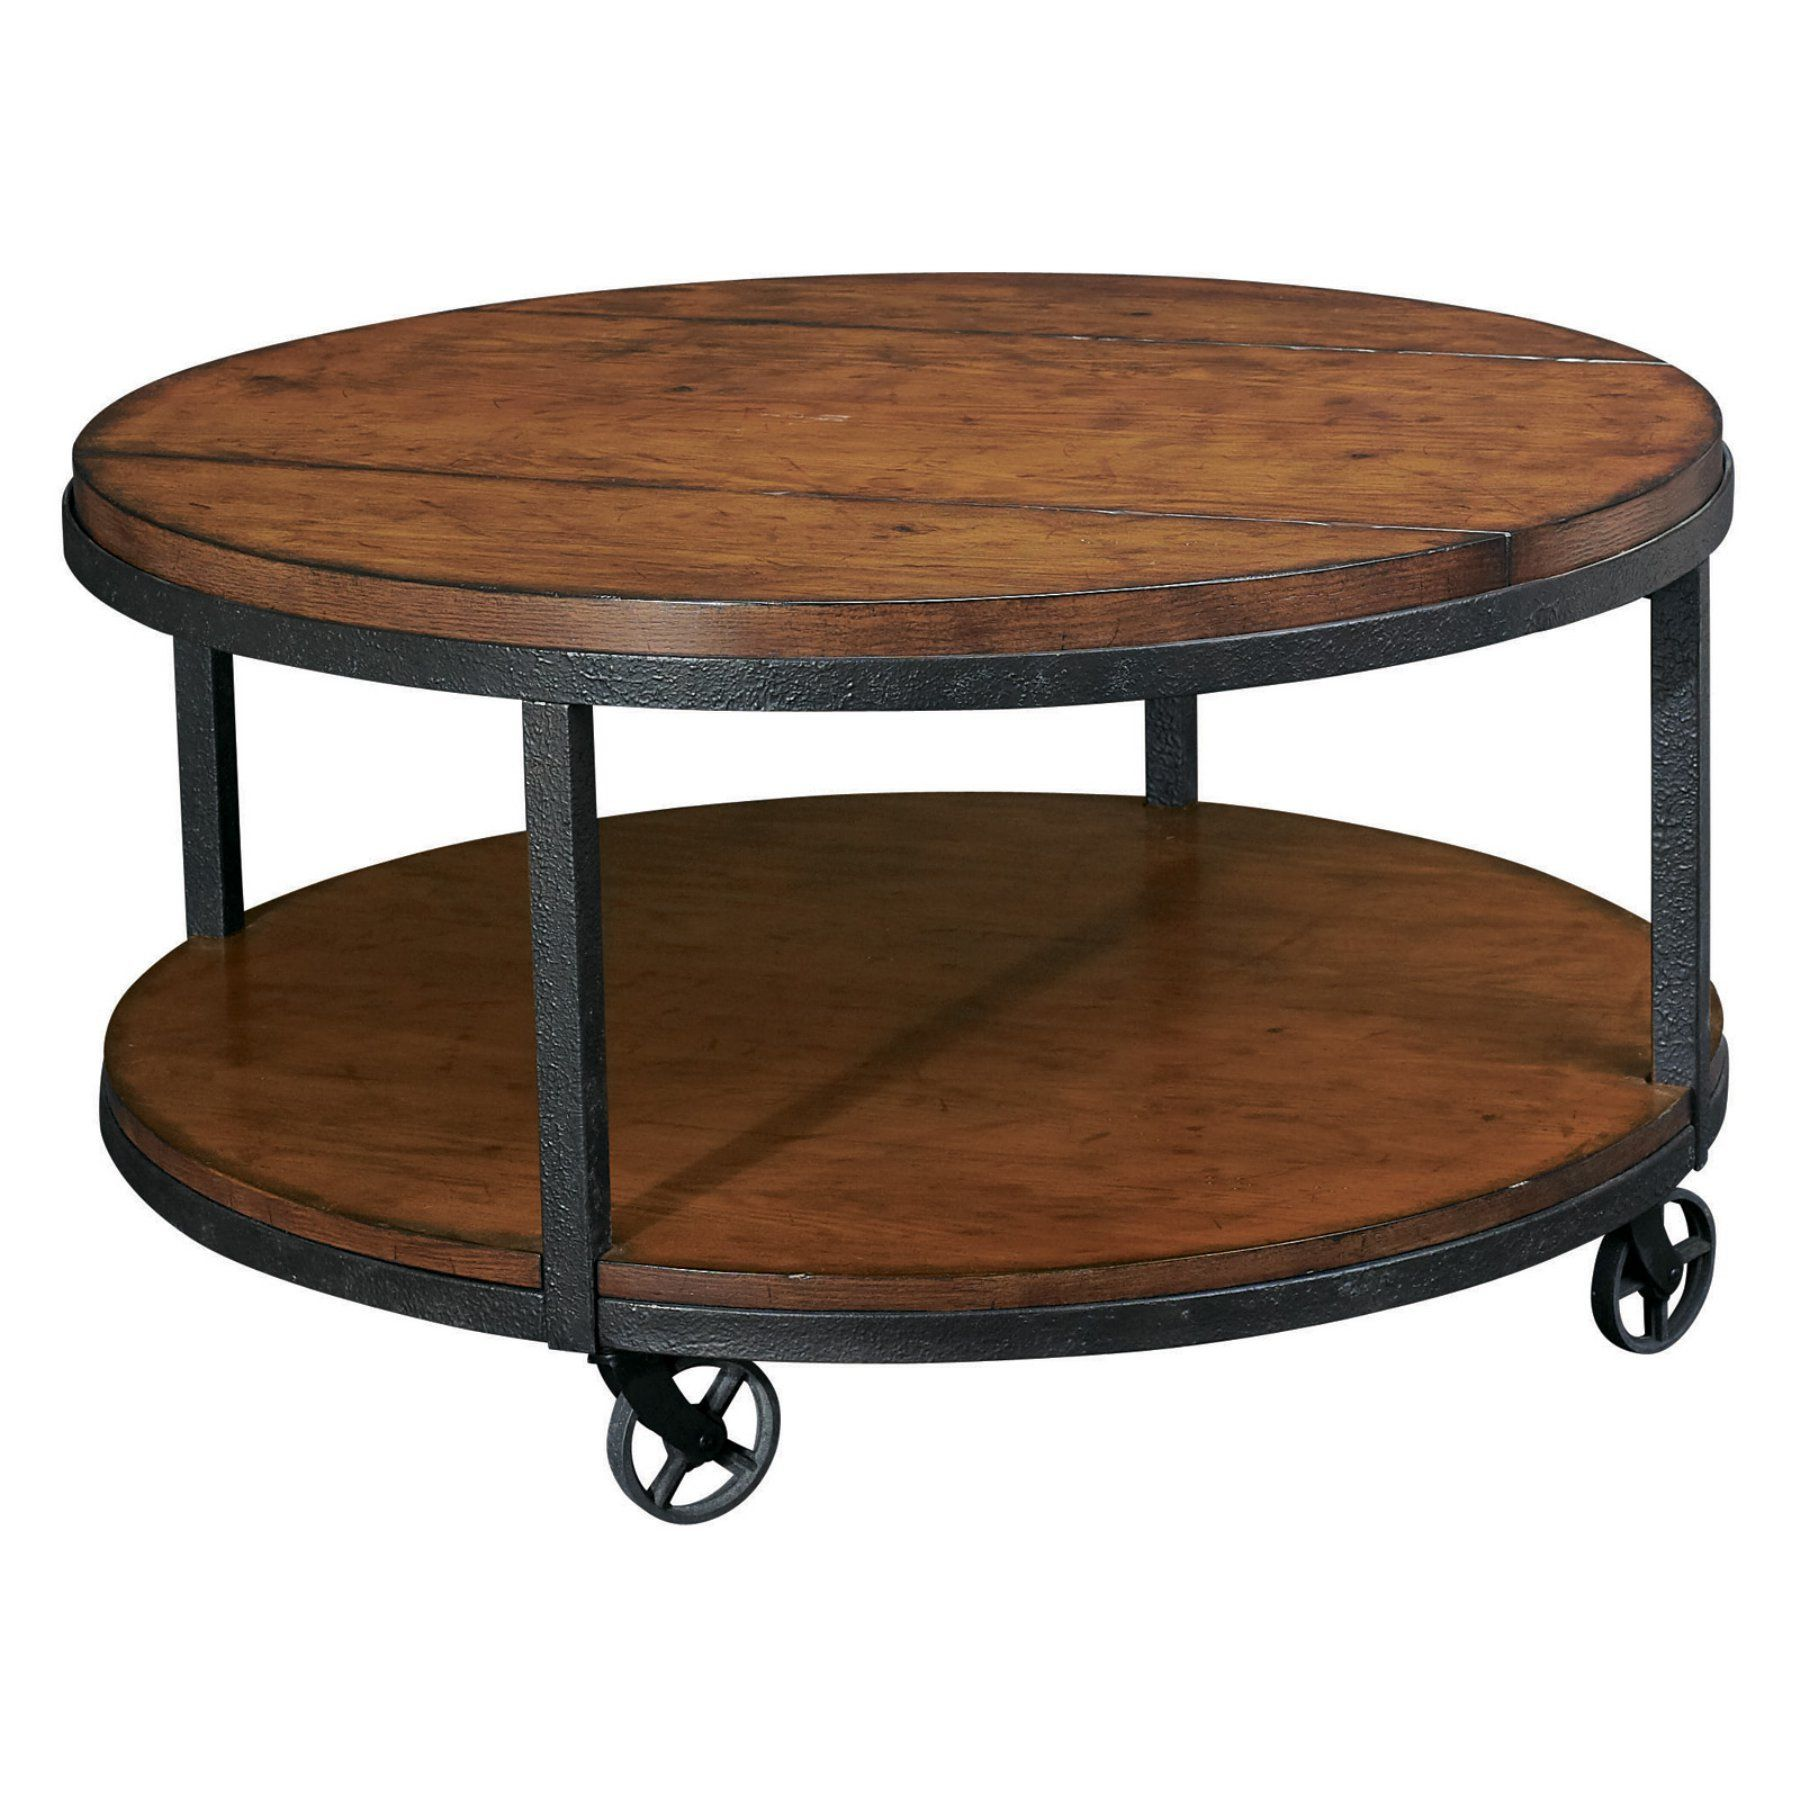 Round Coffee Table With Chairs.Hammary Baja Round Coffee Table T2075205 00 Products In 2019